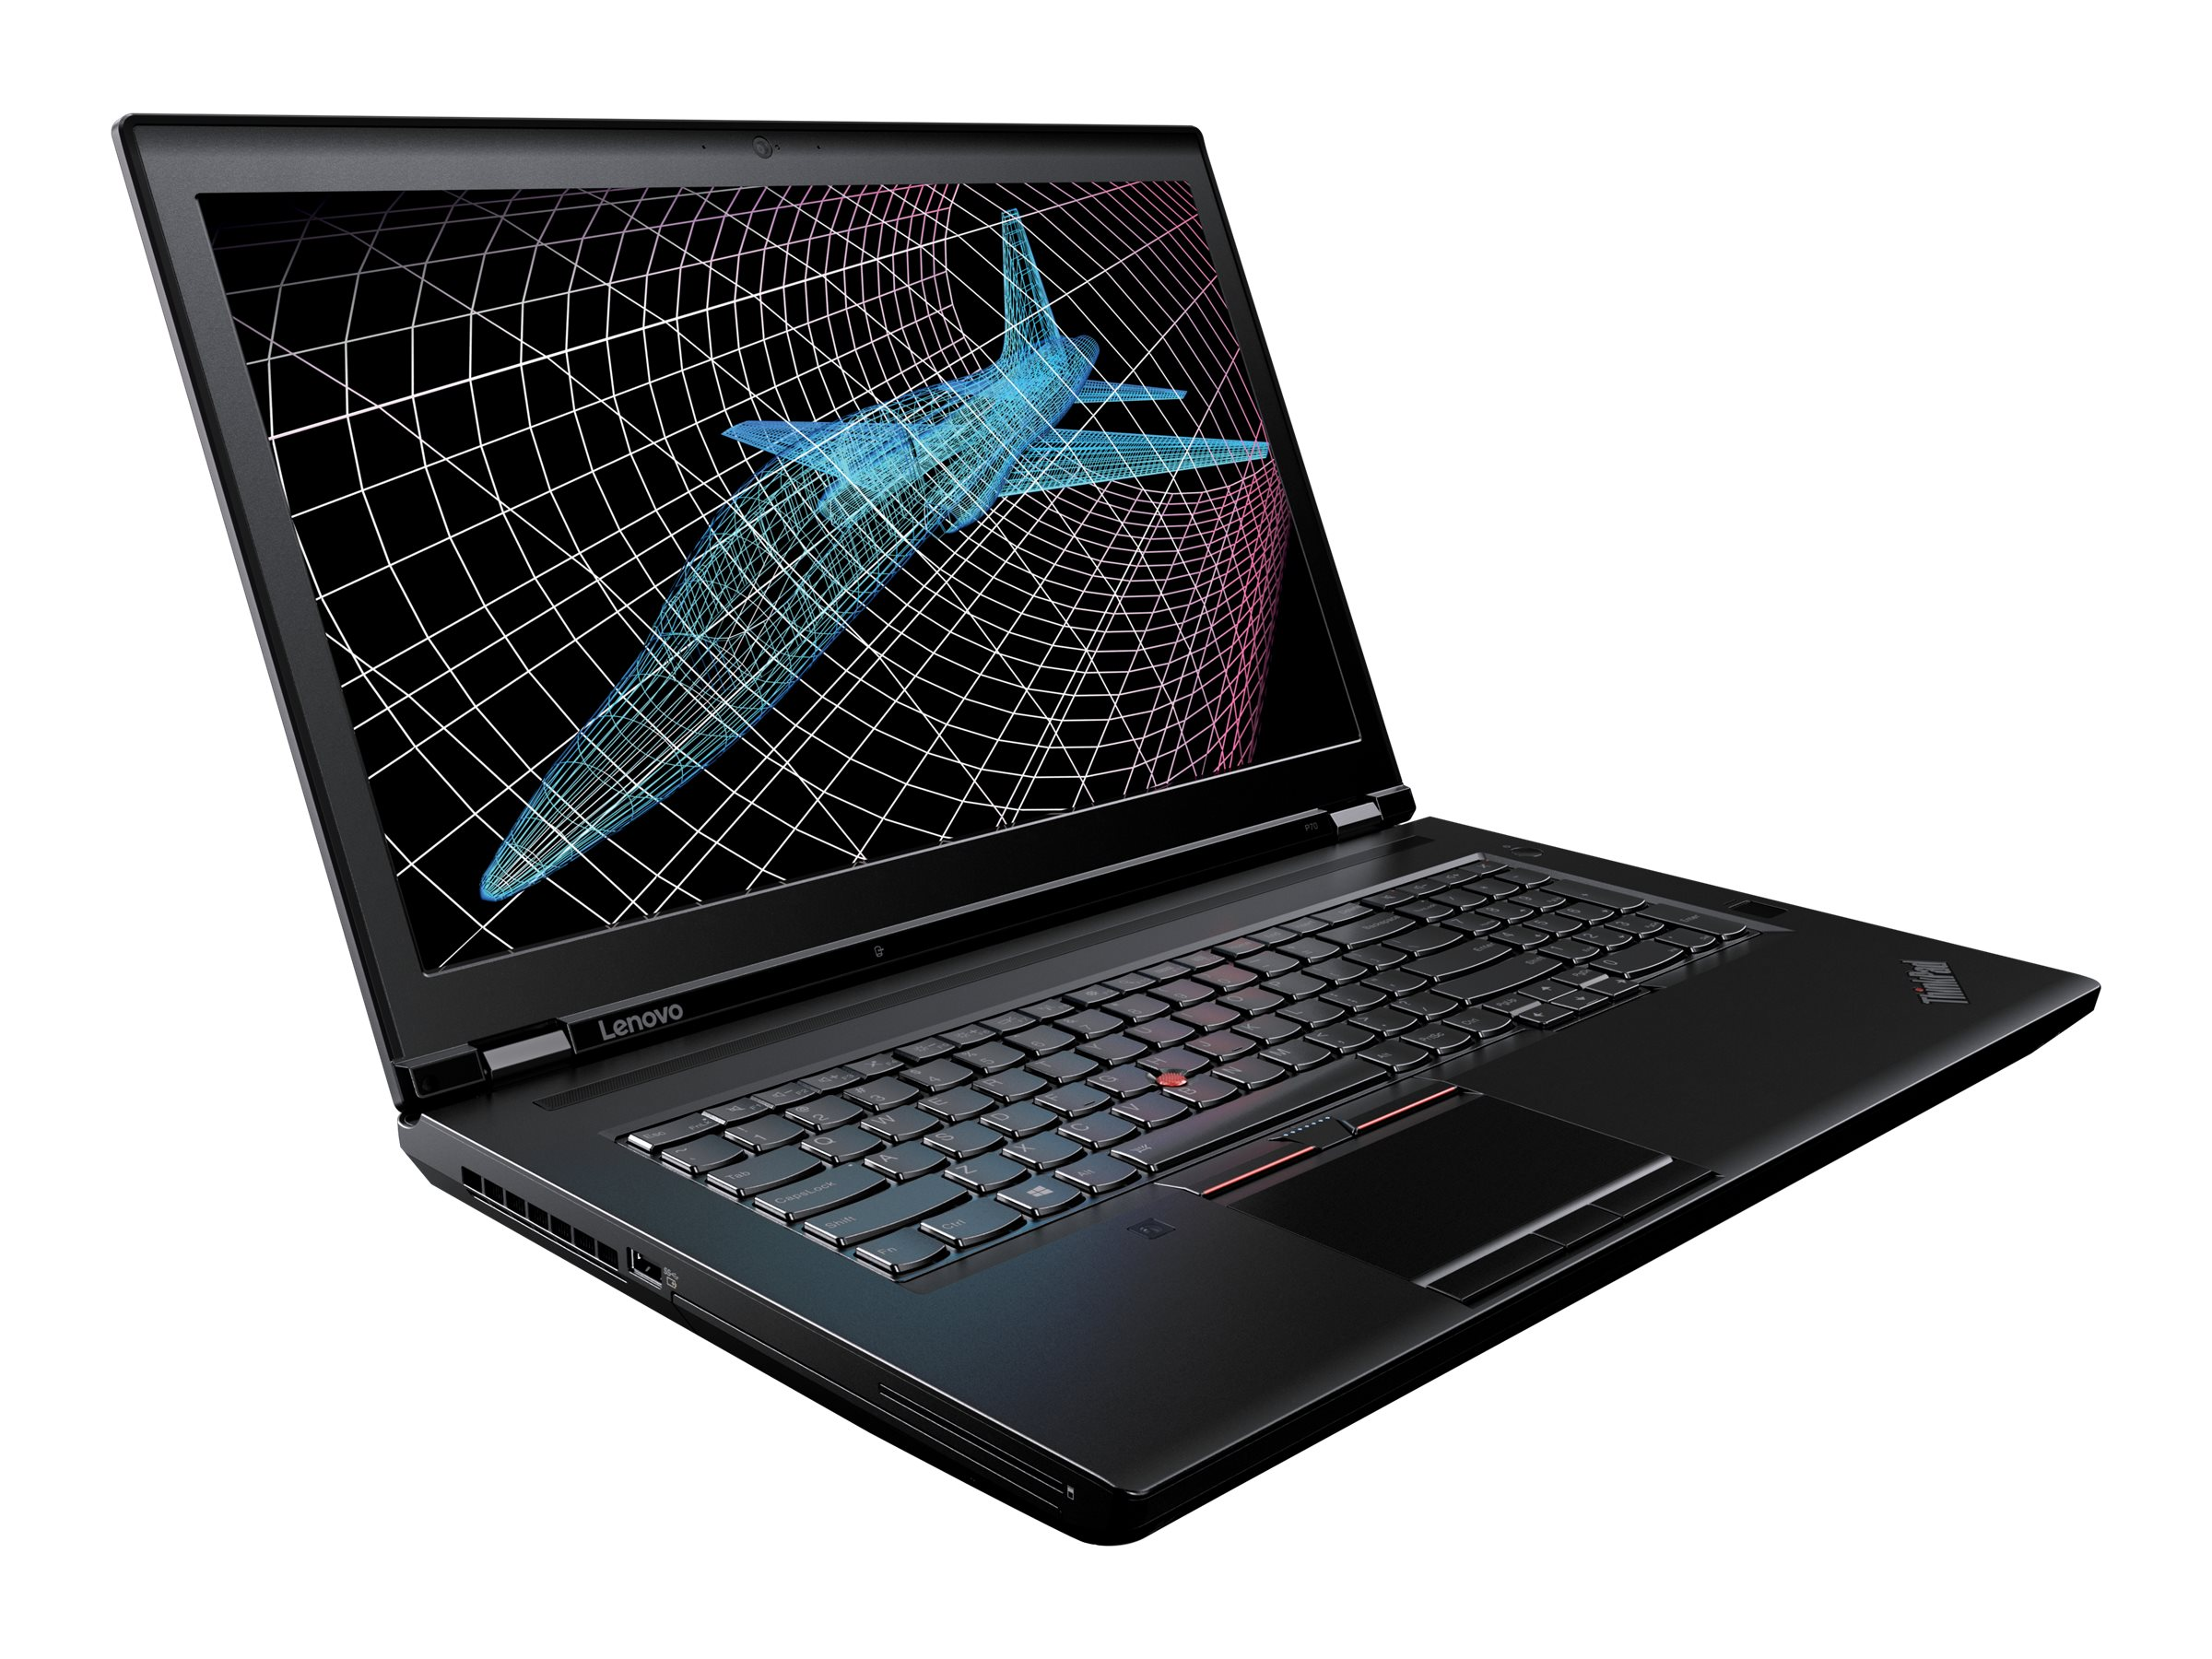 Lenovo TopSeller ThinkPad P70 Core i7-6820HQ 2.7GHz 8GB 256GB DVD ac BT FR WC XR M3000M 17.3 FHD MT W10P64, 20ER000QUS